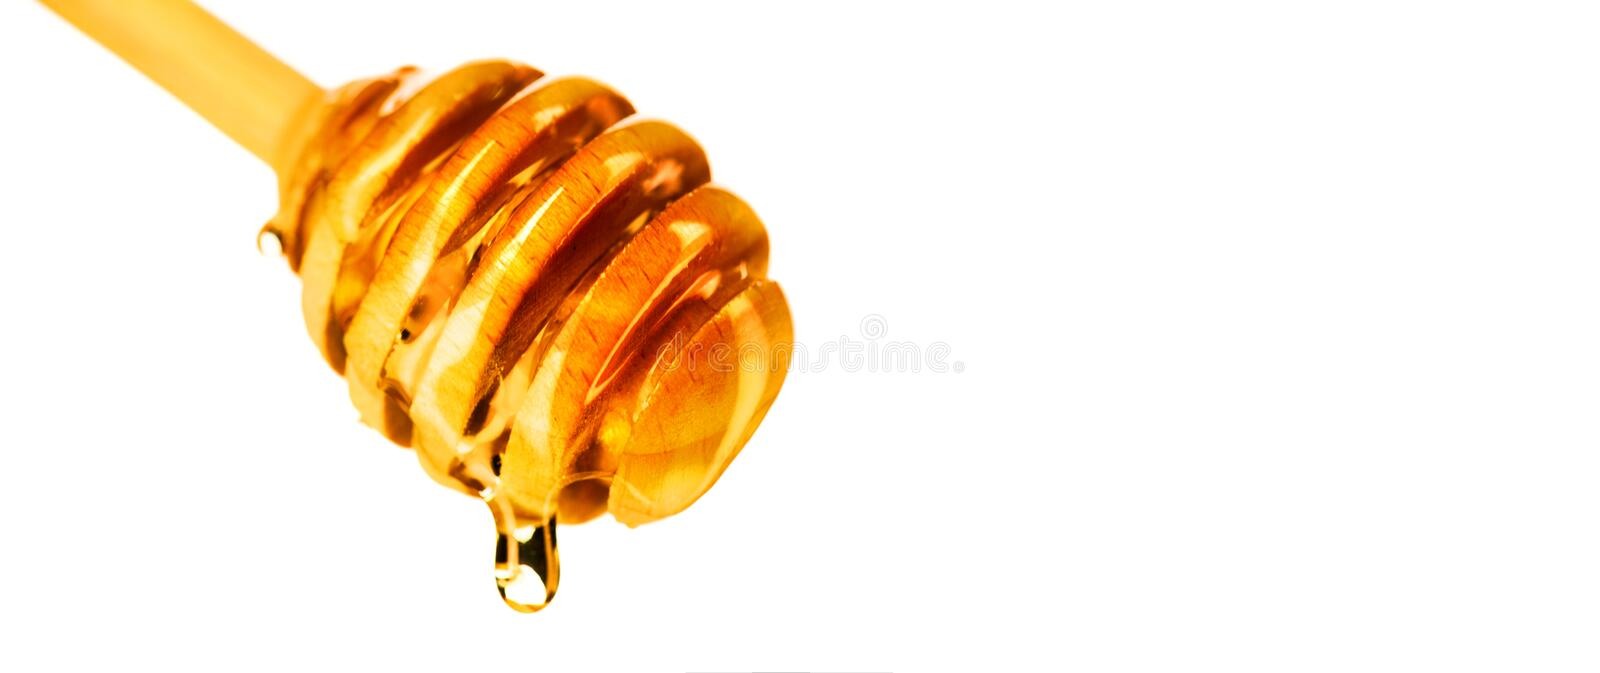 Honey dripping from honey dipper isolated on white background. Thick honey dipping from the wooden spoon. Honey dripping from honey dipper isolated on white stock photos